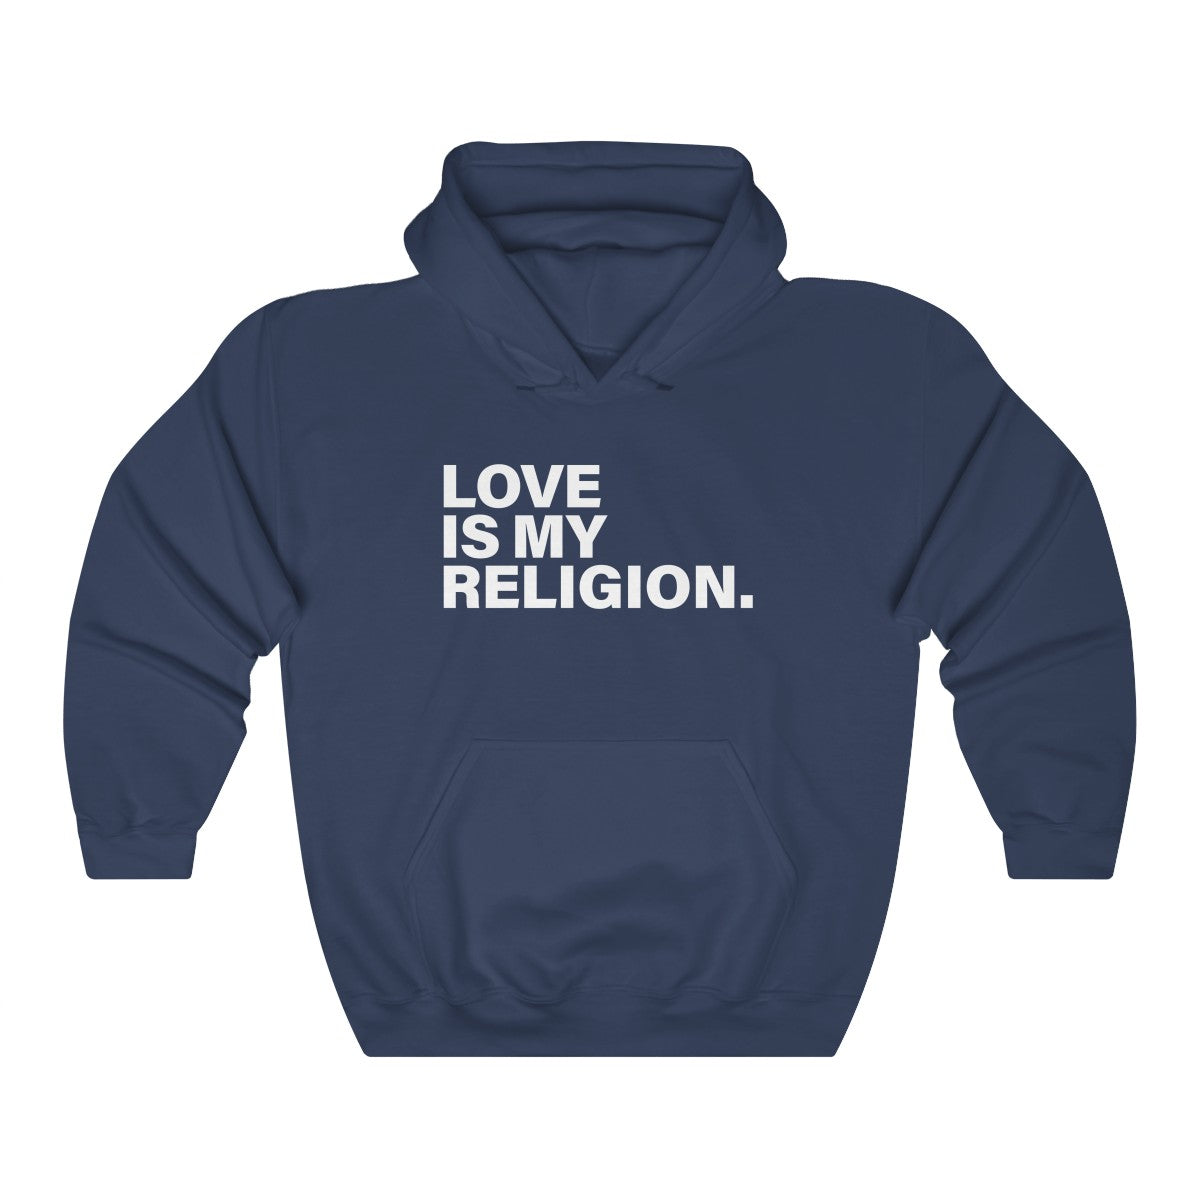 Love Is My Religion Unisex Heavy Blend™ Hooded Sweatshirt - DARK COLORS